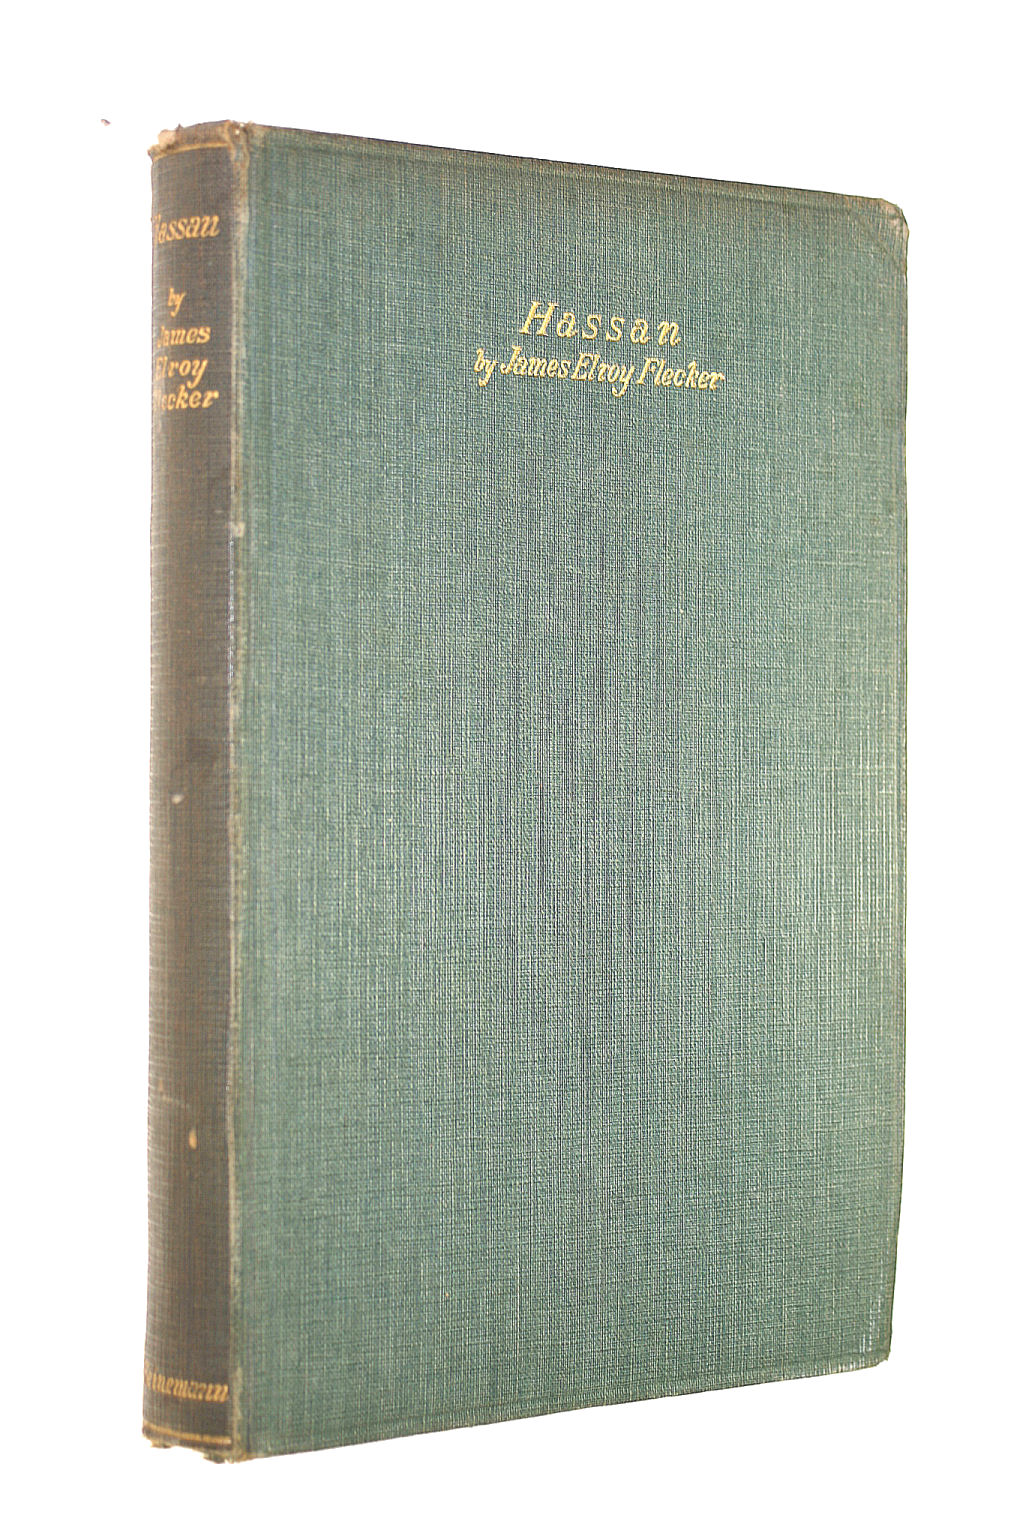 Image for Hassan The Story Of Hassan Of Bagdad And How He Came To Make The Golden Journey To Samarkand